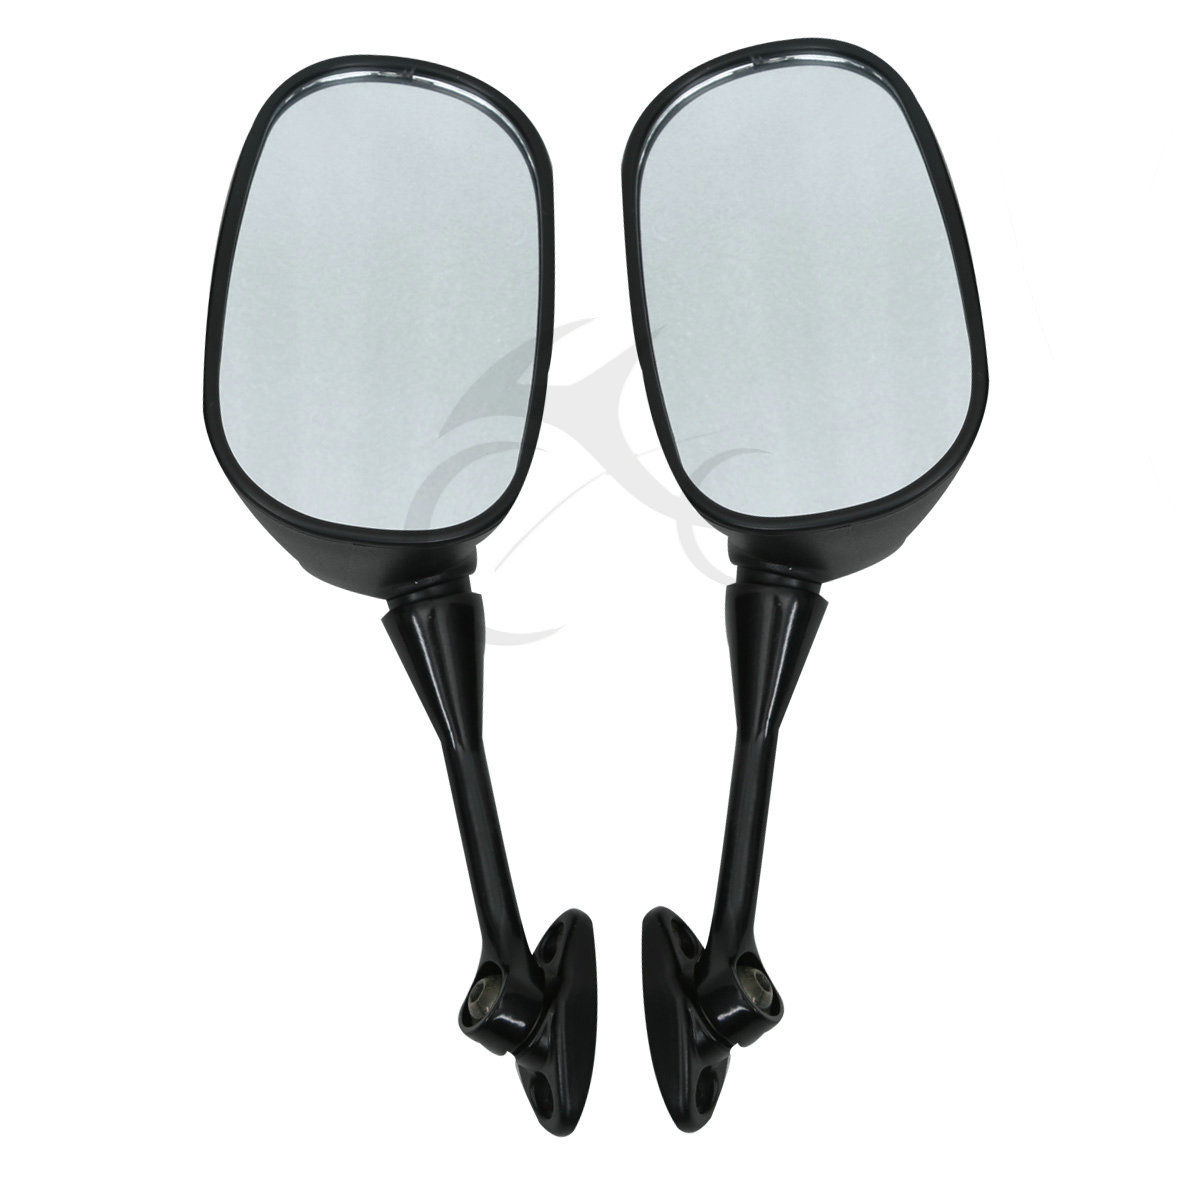 Awesome Rearview Side Mirrors For Honda Cbr1000rr 2004 2007 2005 2006 Cbr600rr 2003 2014 2019